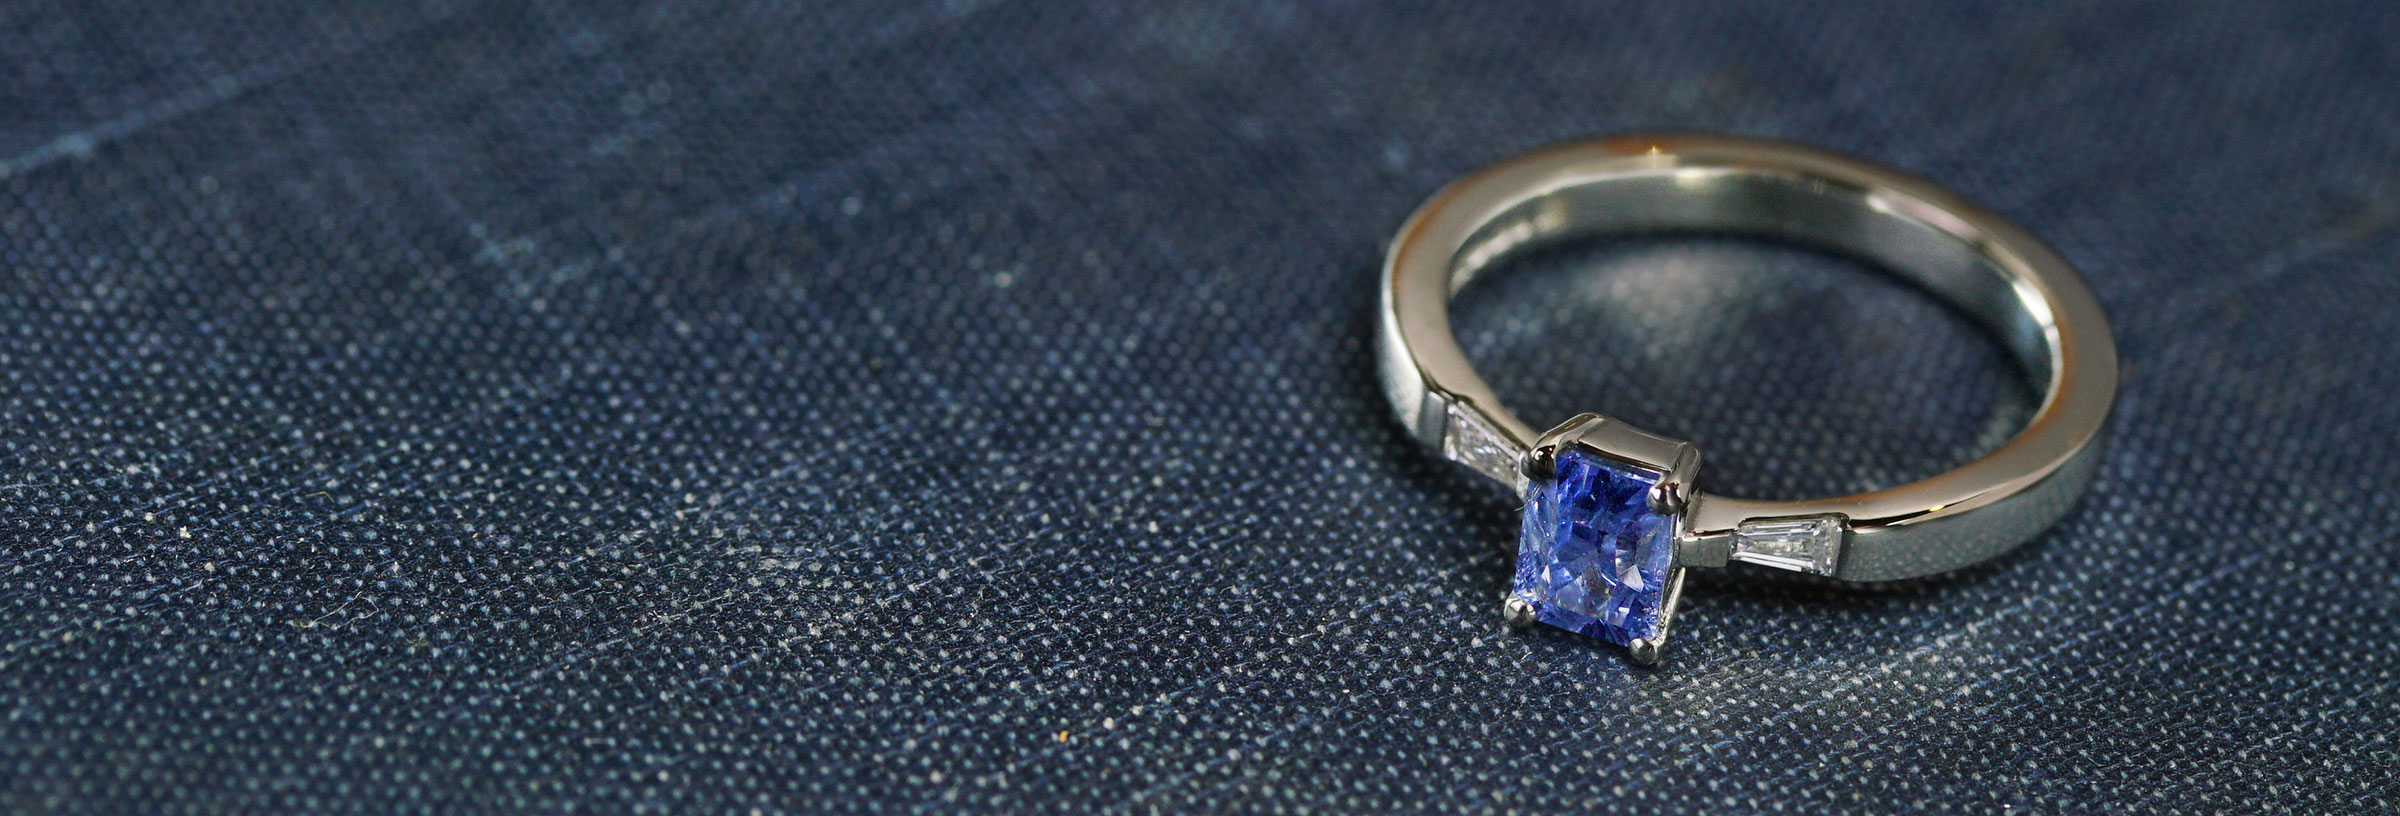 fairtrade-white-gold-diamond-and-light-blue-sapphire-engagement-ring